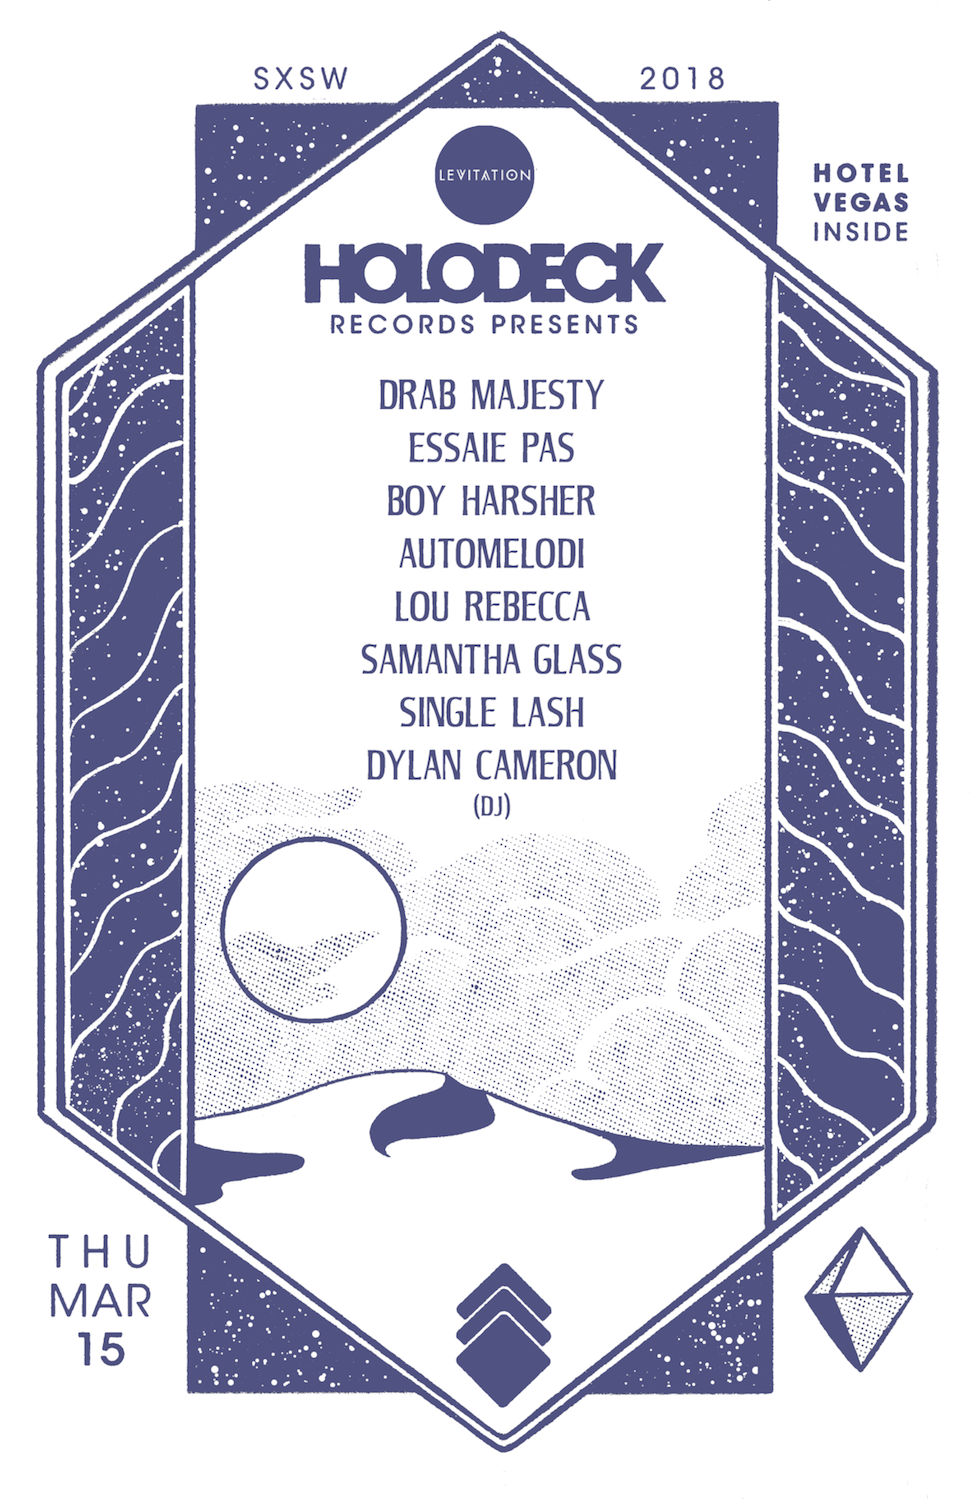 Holodeck Records SXSW